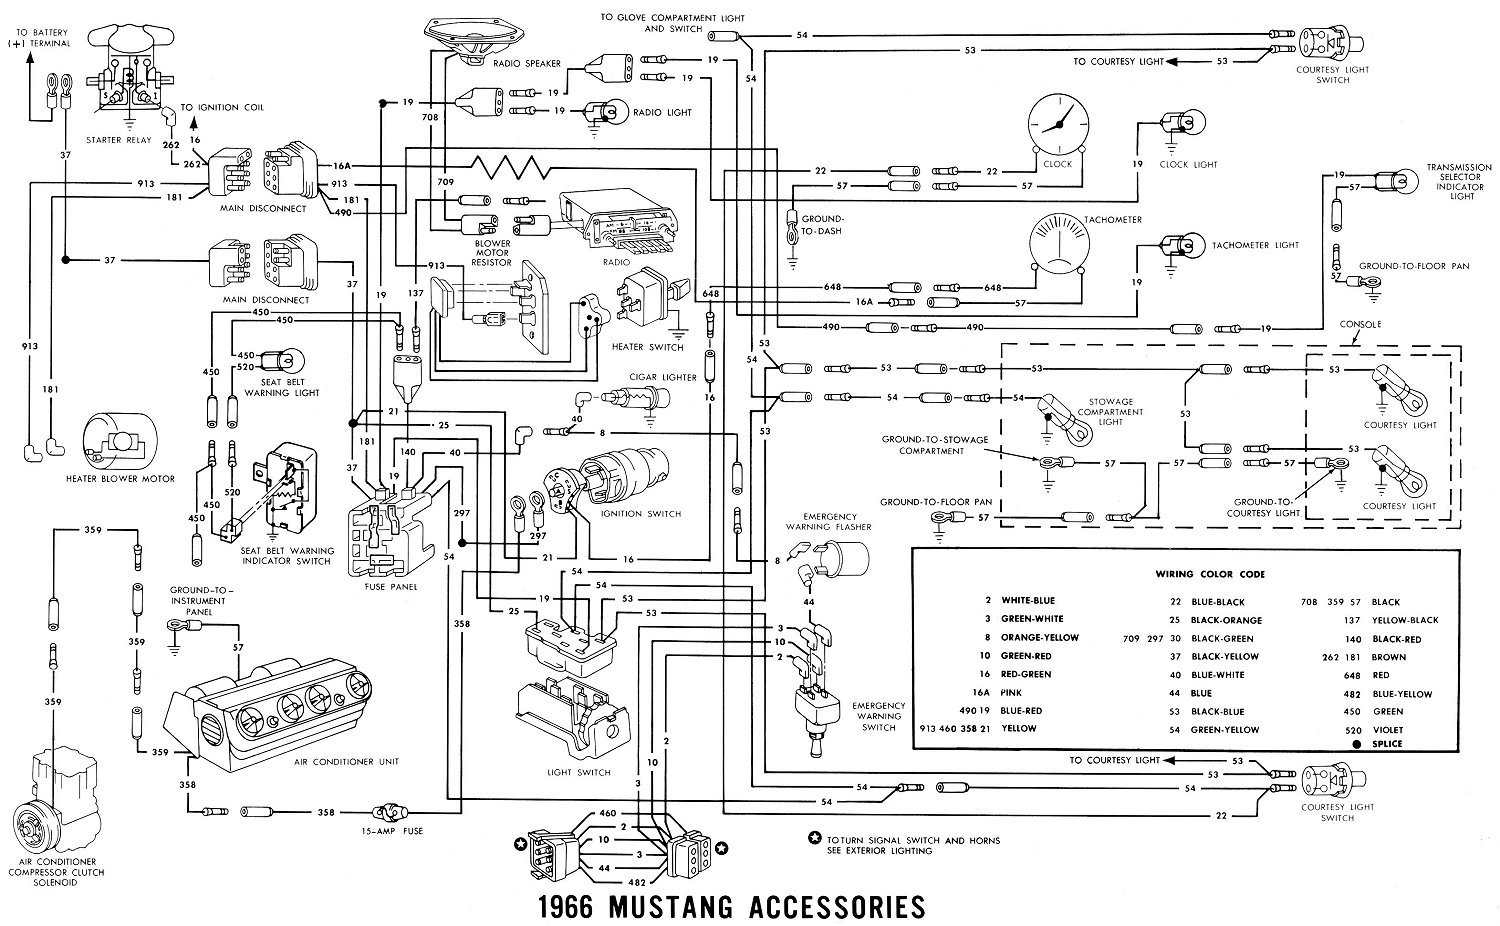 134329d1310481753 two unknown connectors wiring harness 66acces1 two unknown connectors in wiring harness? ford mustang forum Wiring Harness Diagram at gsmx.co